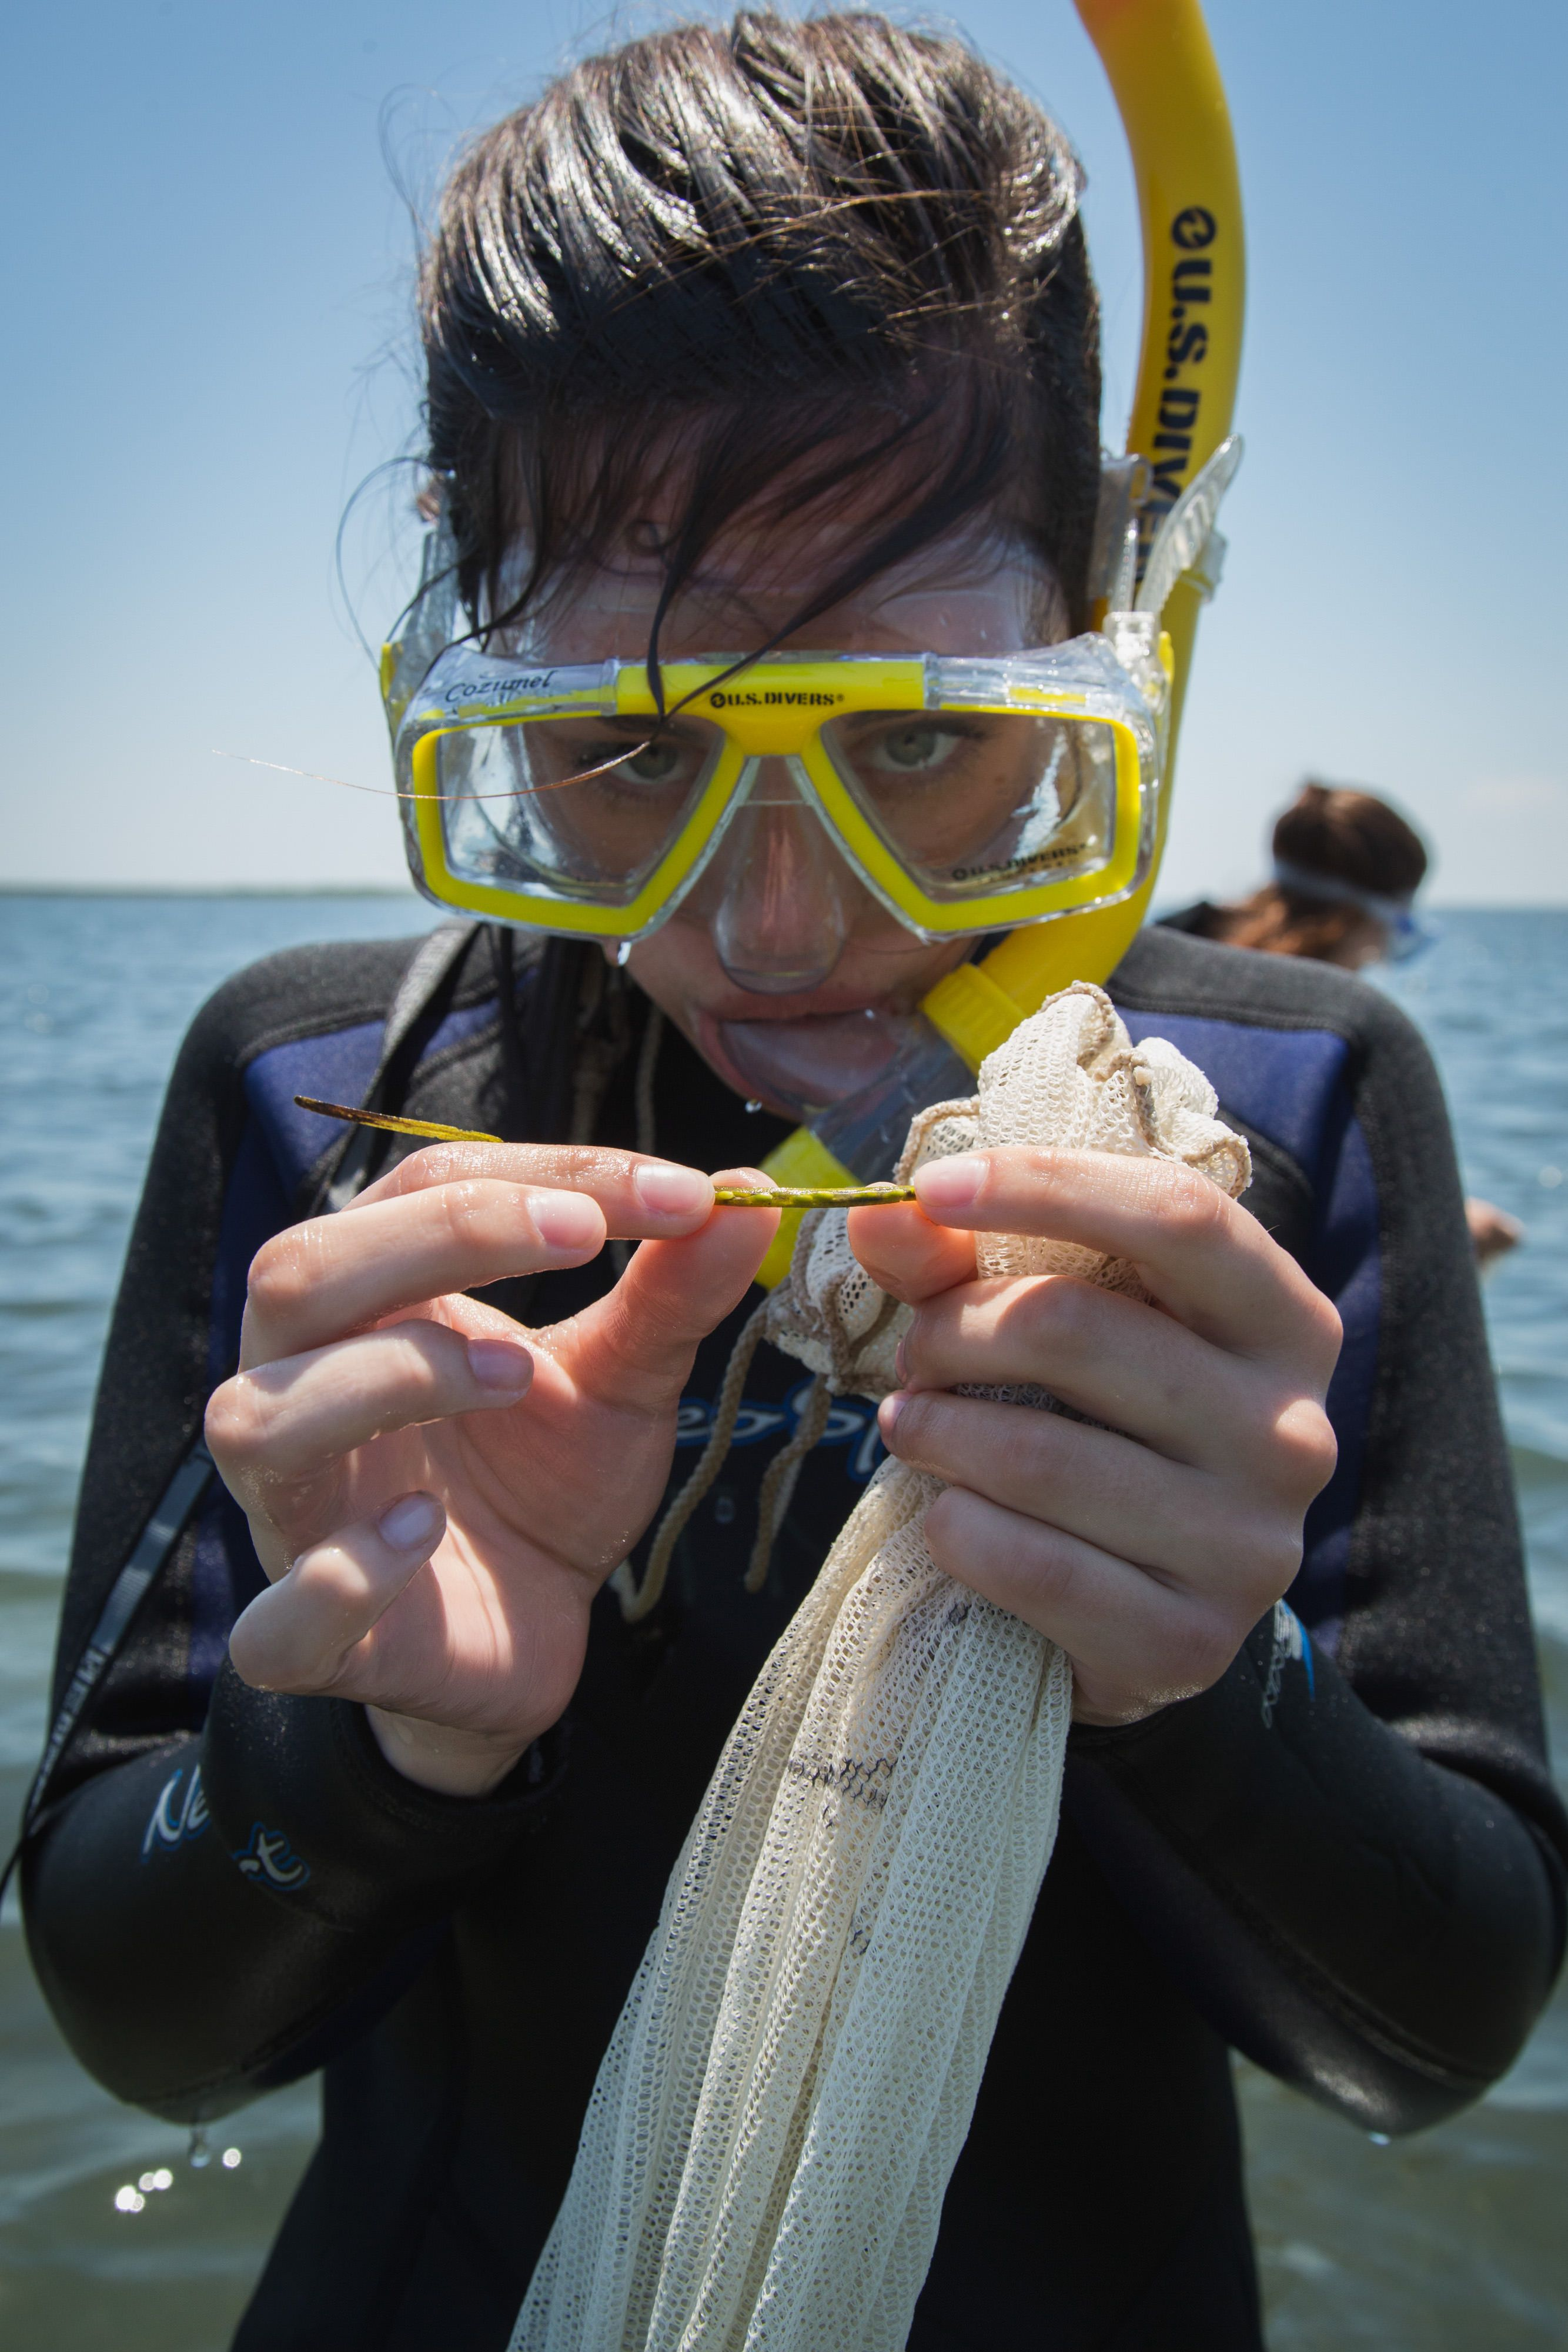 A woman wearing a yellow snorkeling mask looks closely at an eelgrass shoot that she holds stretched between her fingers.